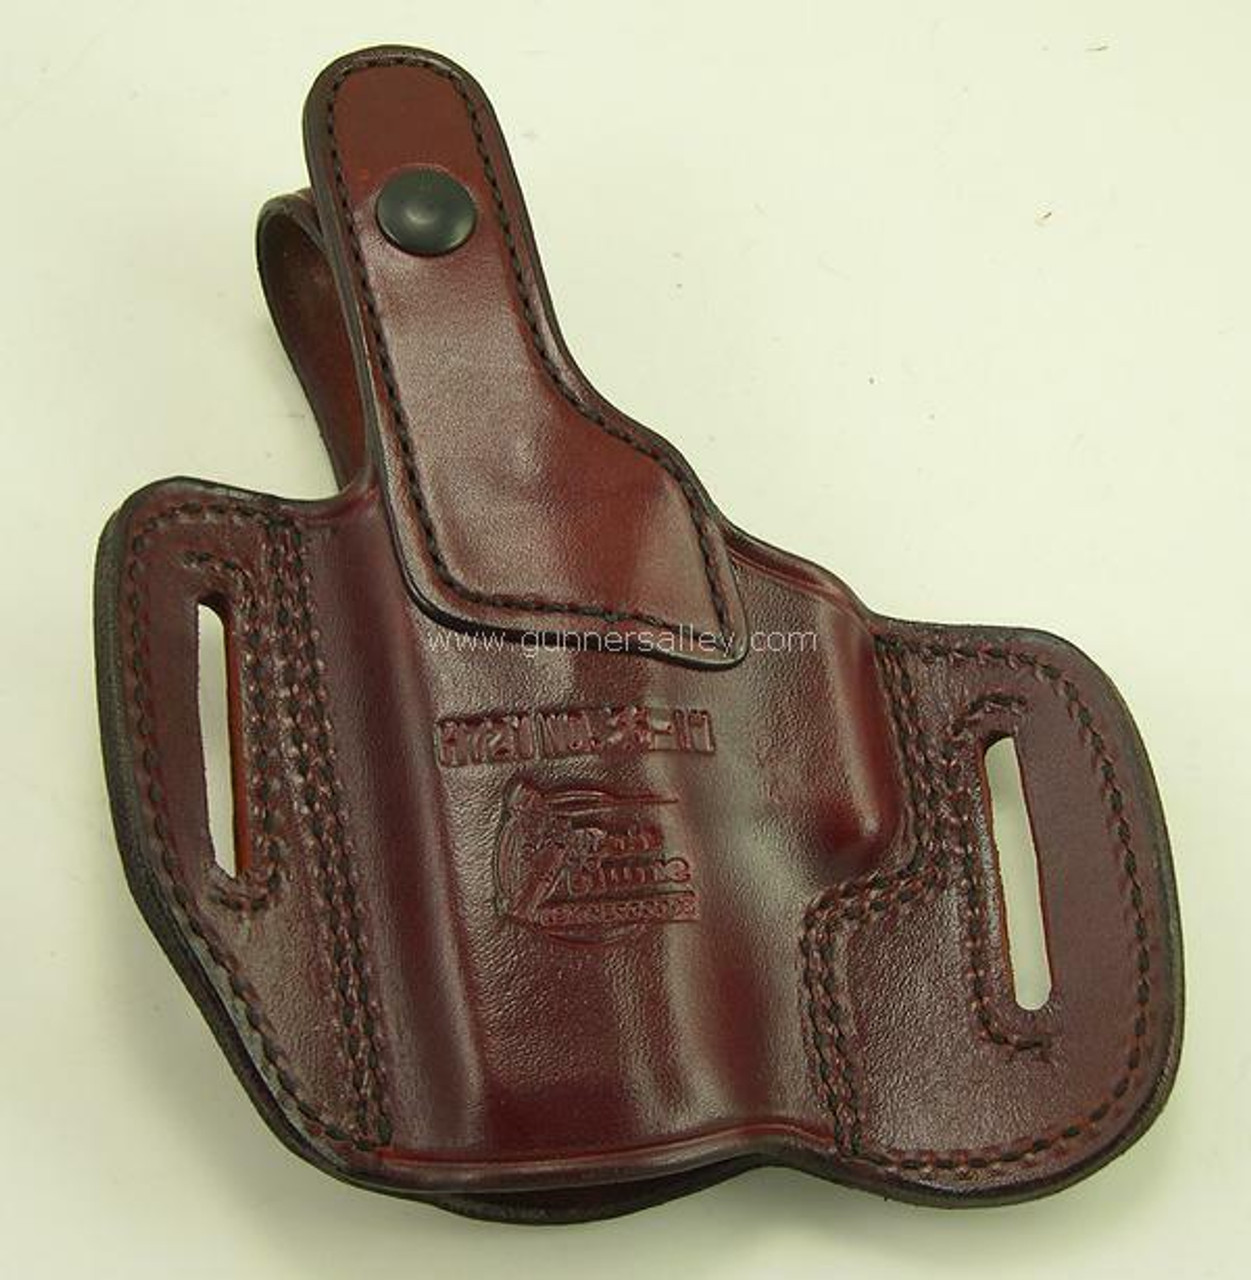 Shown in Saddle Brown for the Glock G26 - rear view